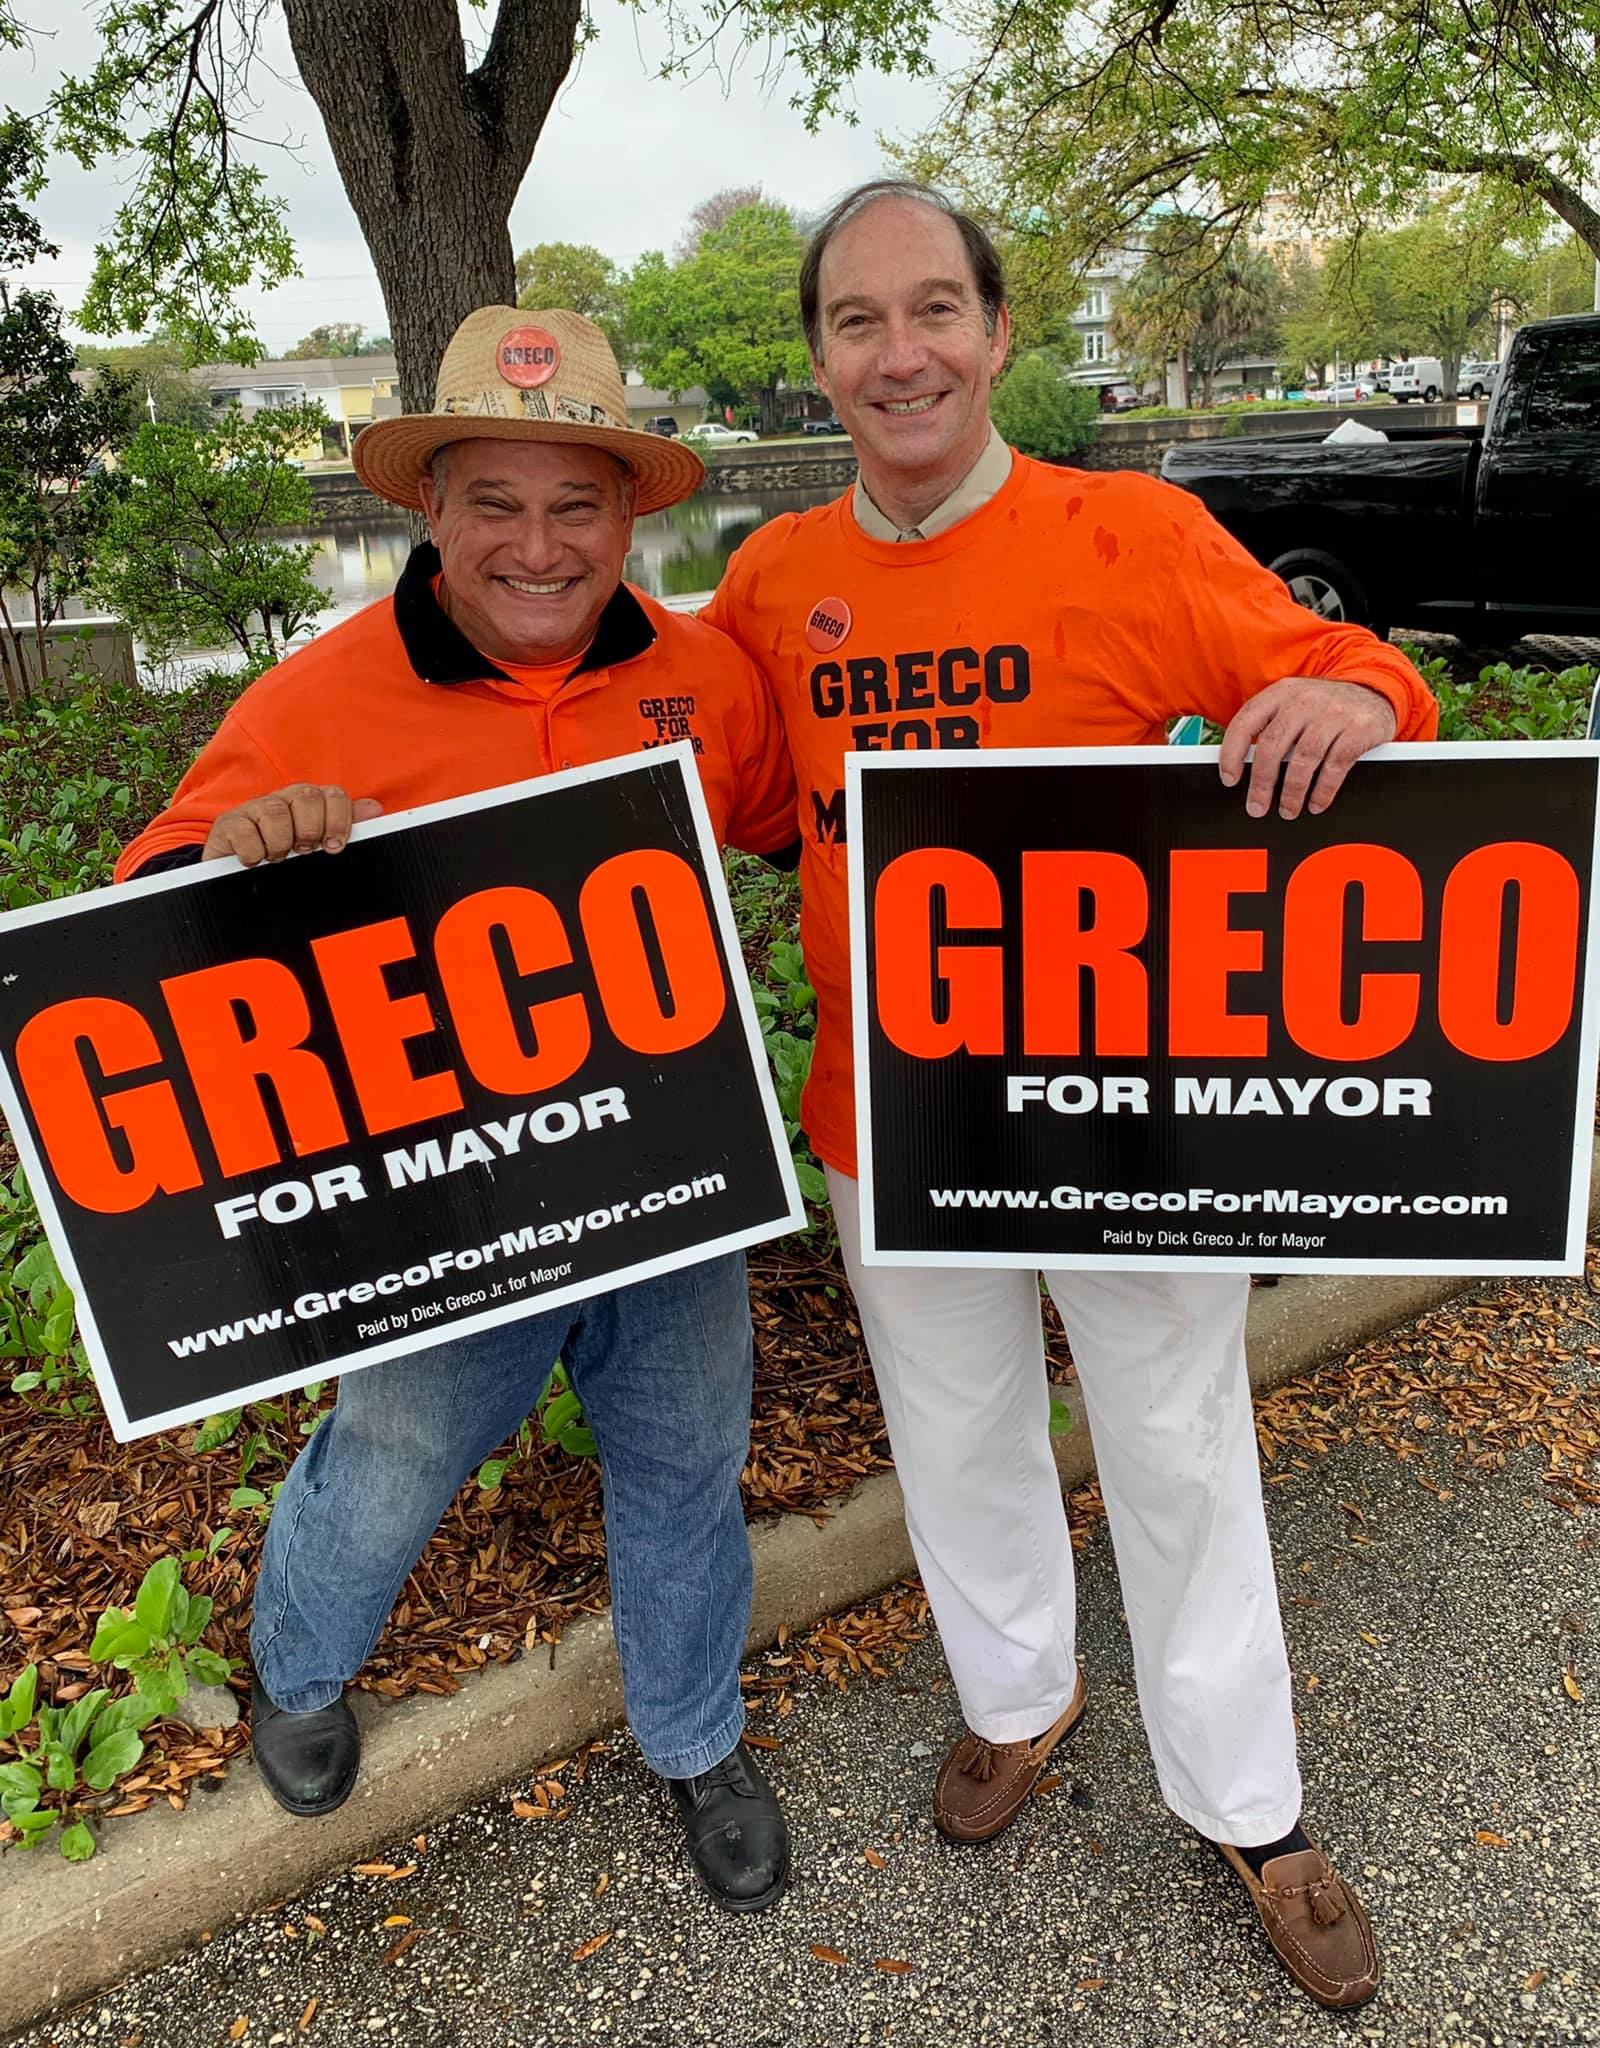 Greco-south-tampa.jpg